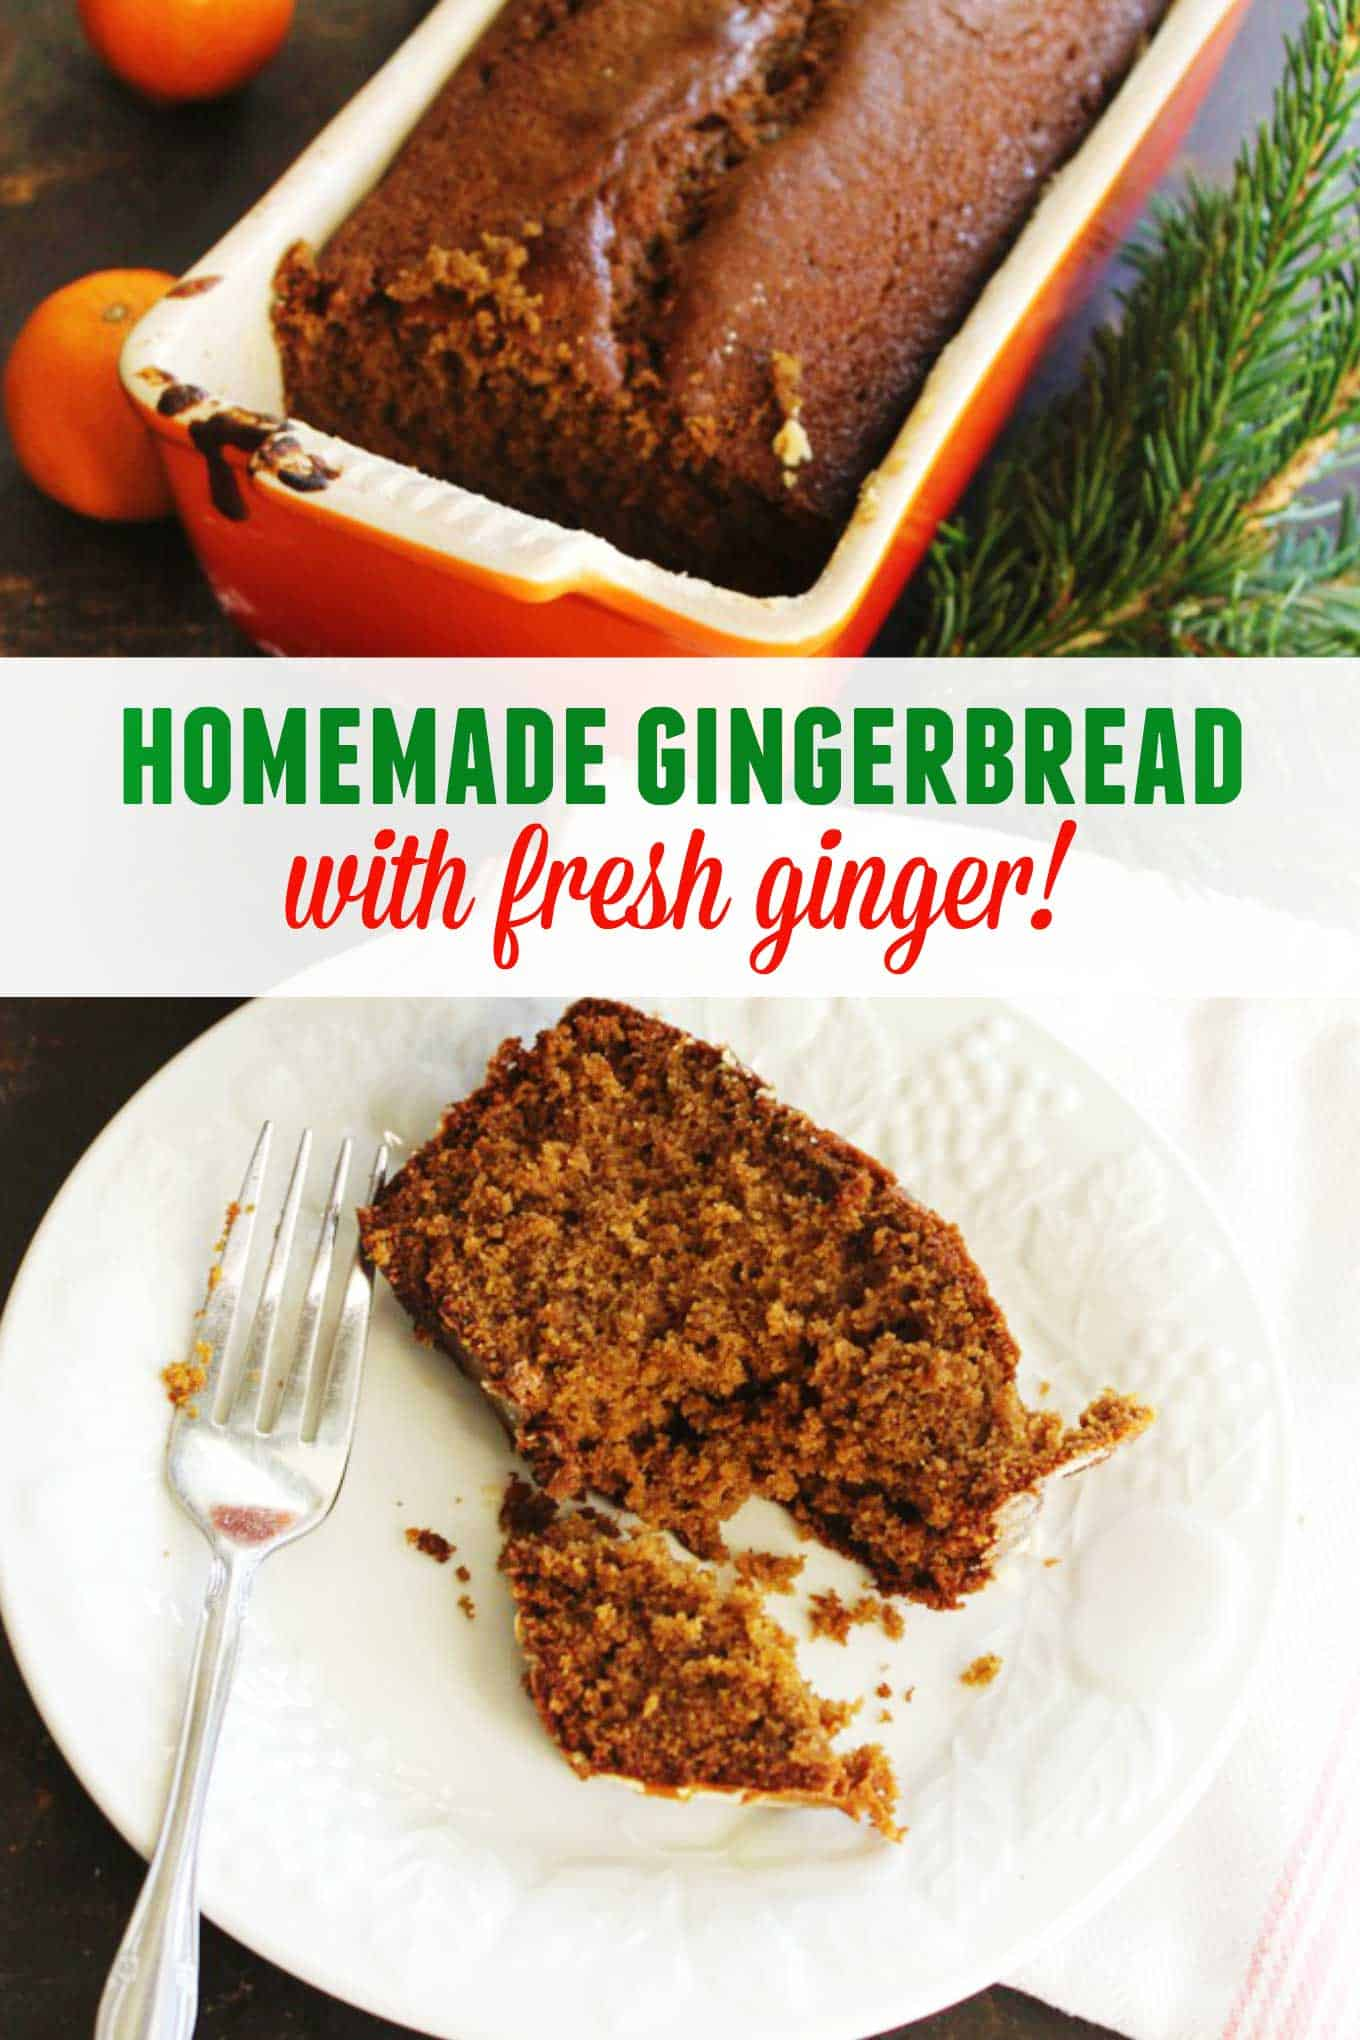 Homemade gingerbread with fresh ginger recipe! This classic, spiced gingerbread is perfect for holiday or Christmas baking. // Rhubarbarians //